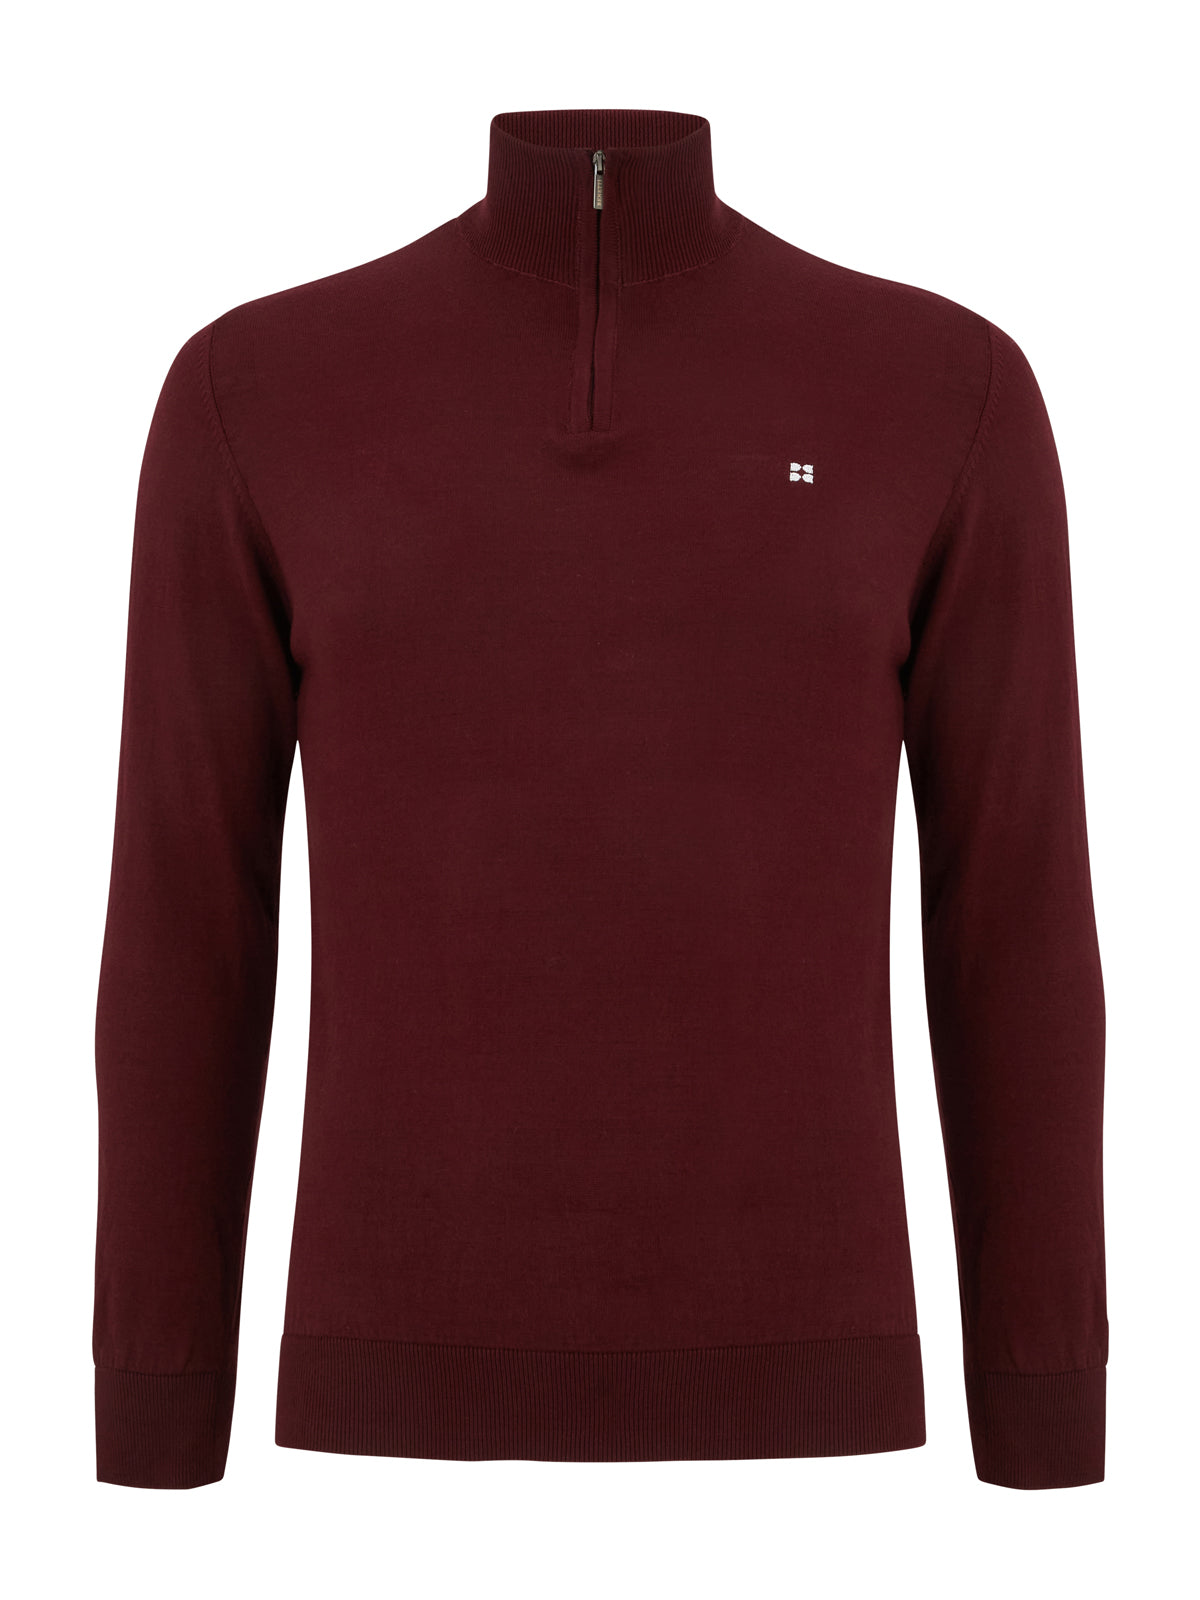 Canon Burgundy Half Zip Sweater